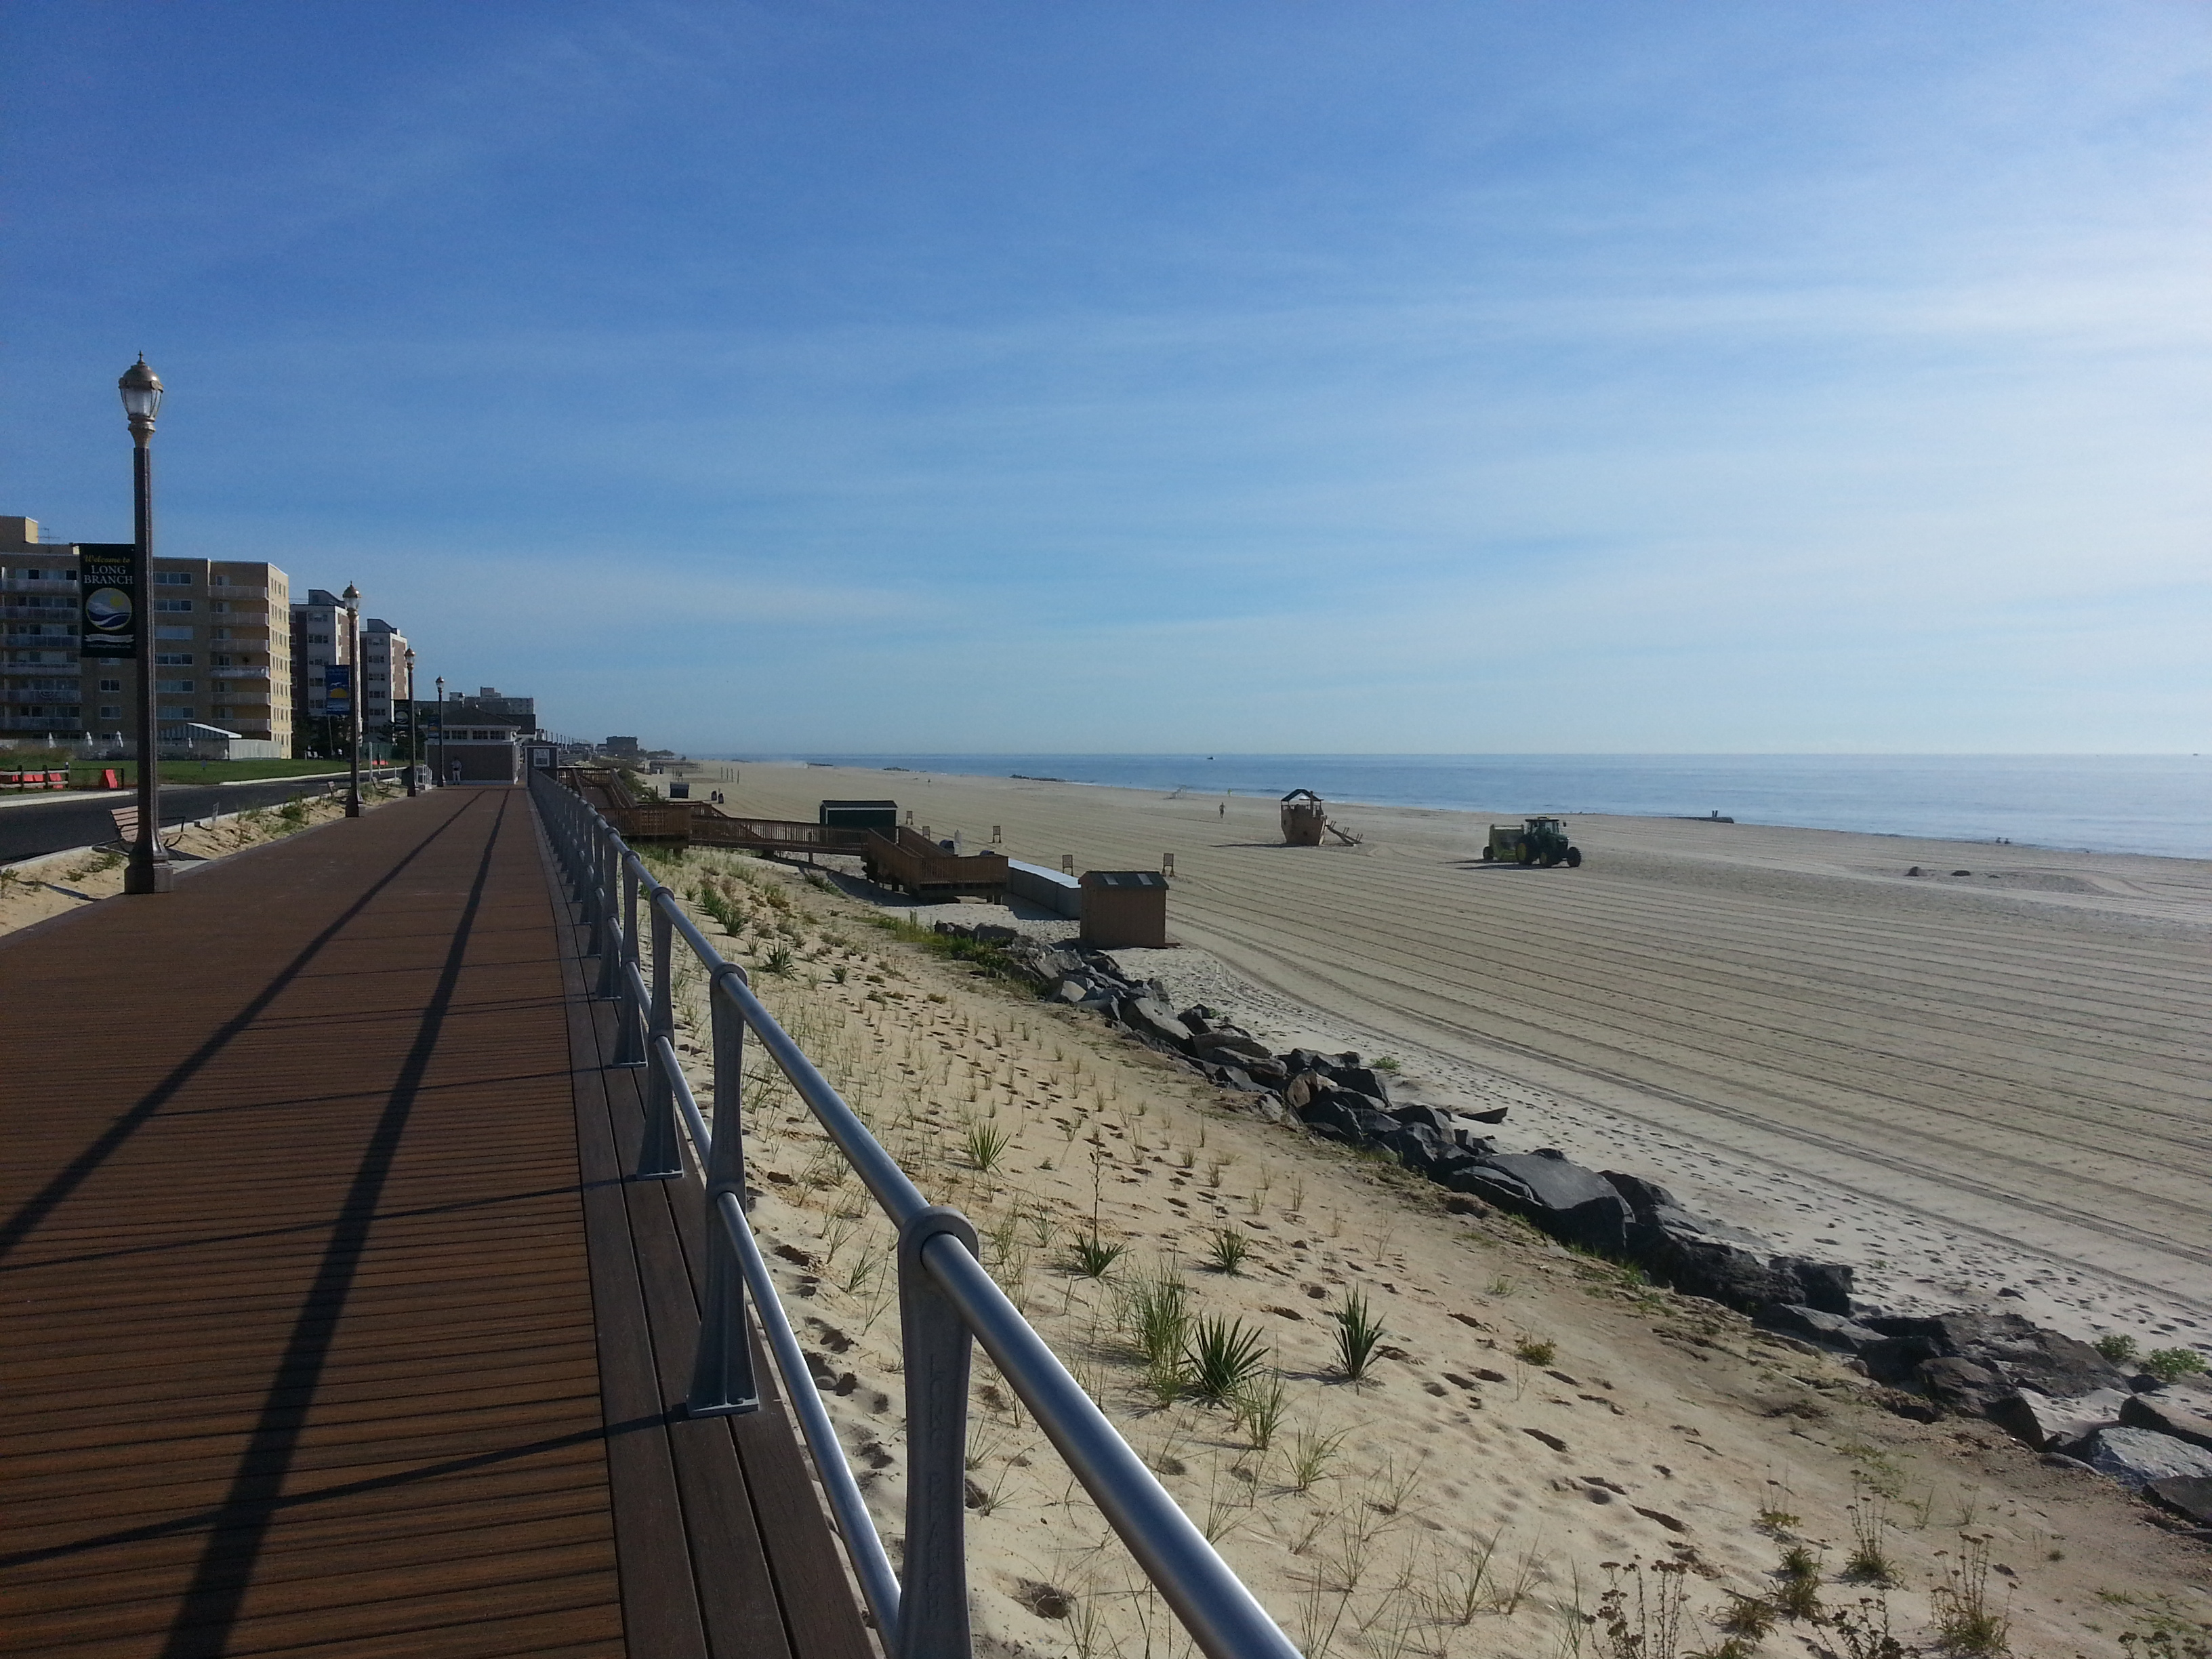 The rebuilt boardwalk and beach access are less that a block from the Sandpebble.